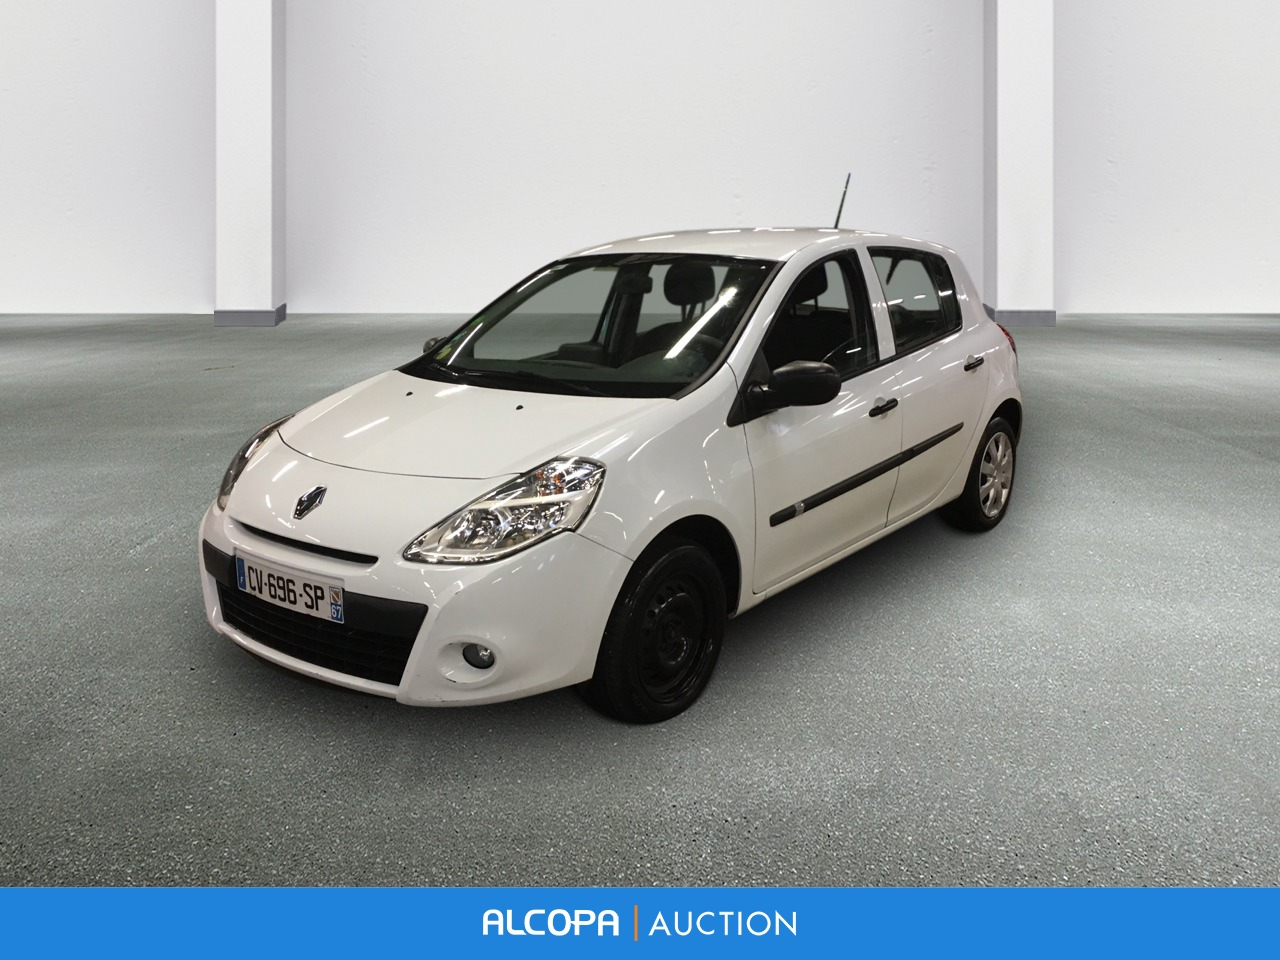 renault clio iii business clio iii dci 75 eco2 business alcopa auction. Black Bedroom Furniture Sets. Home Design Ideas